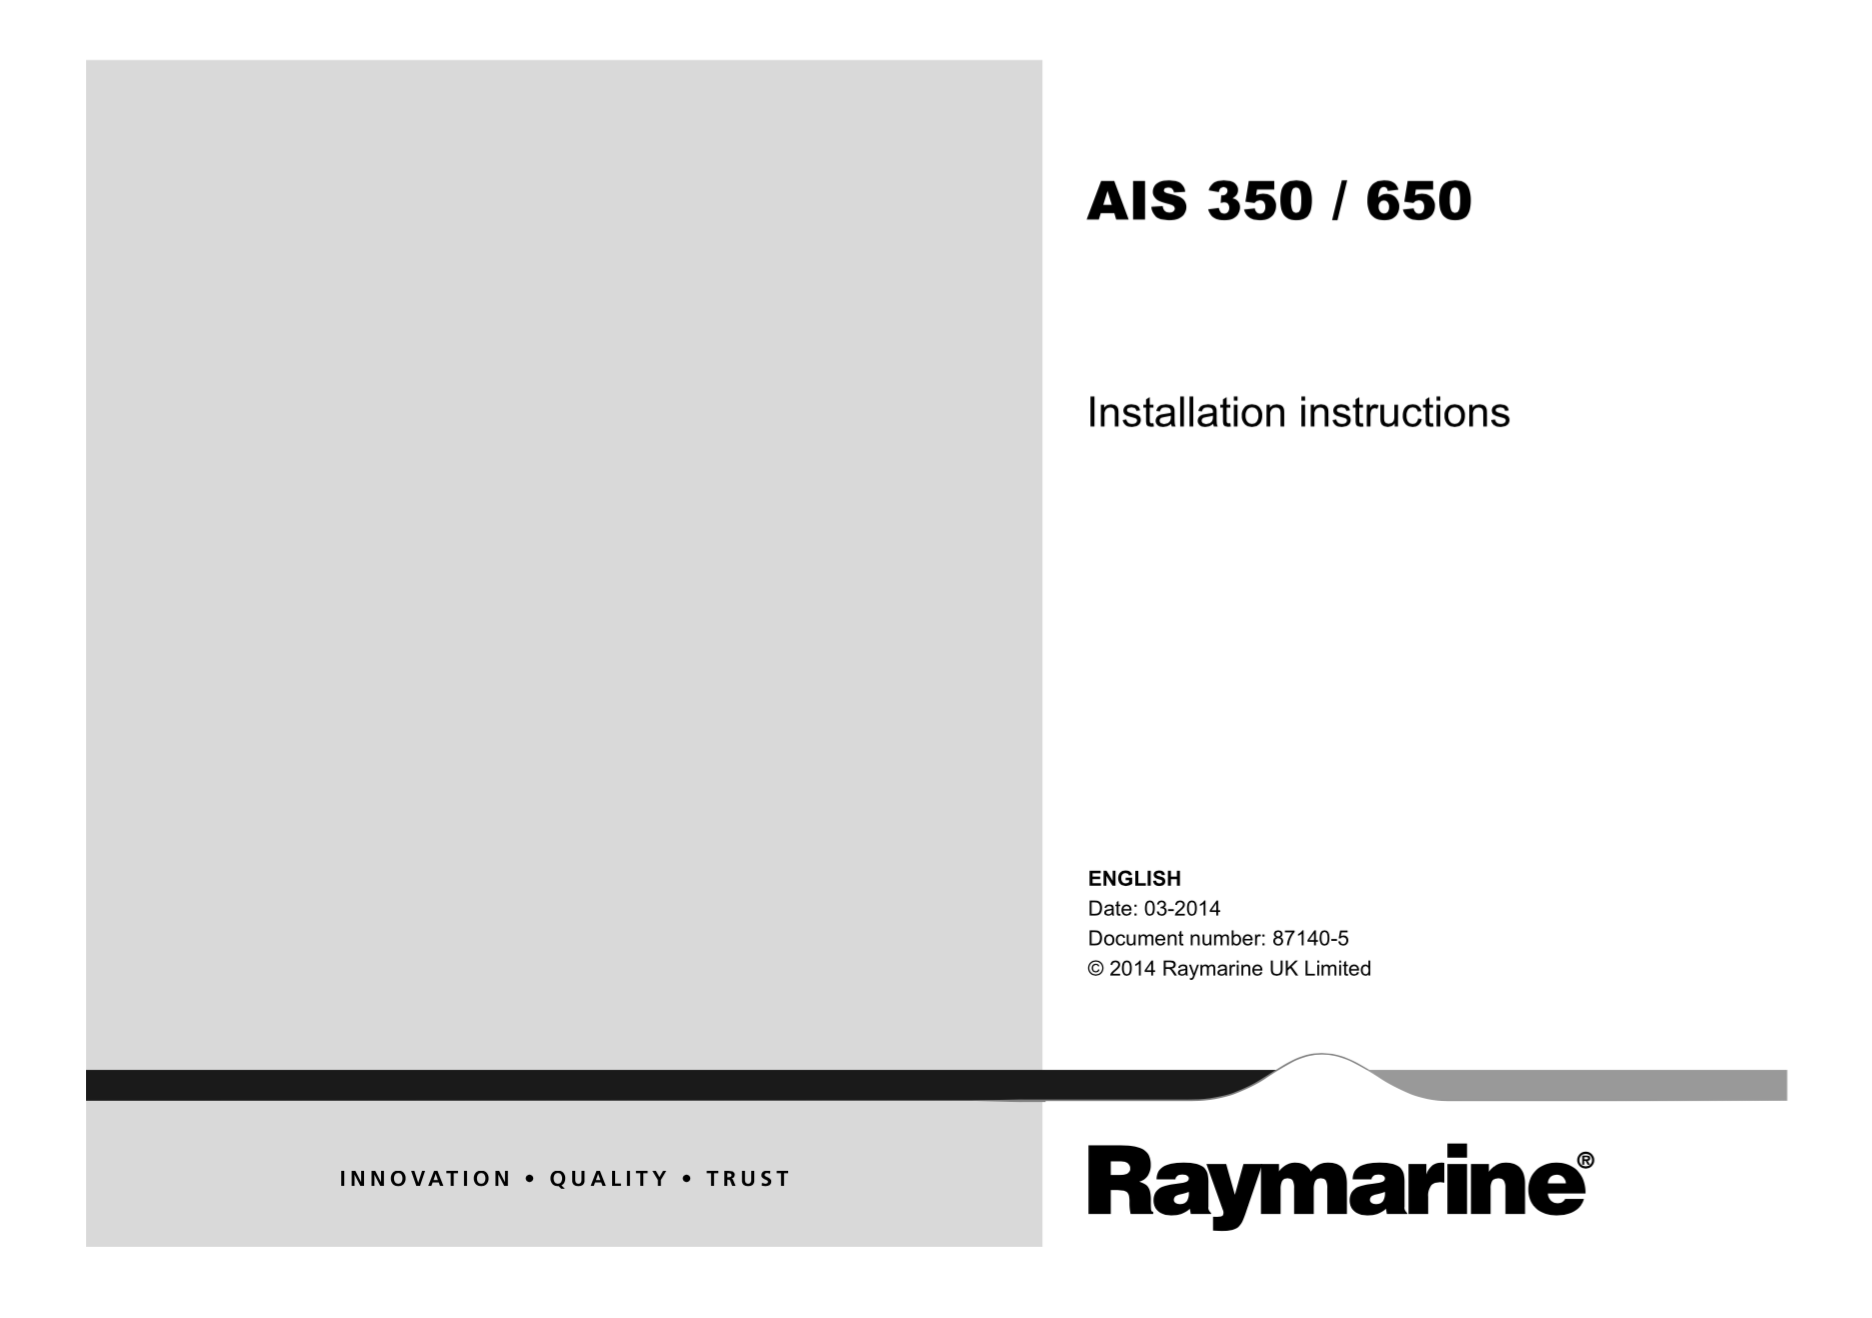 ais 350 650 installation instructions